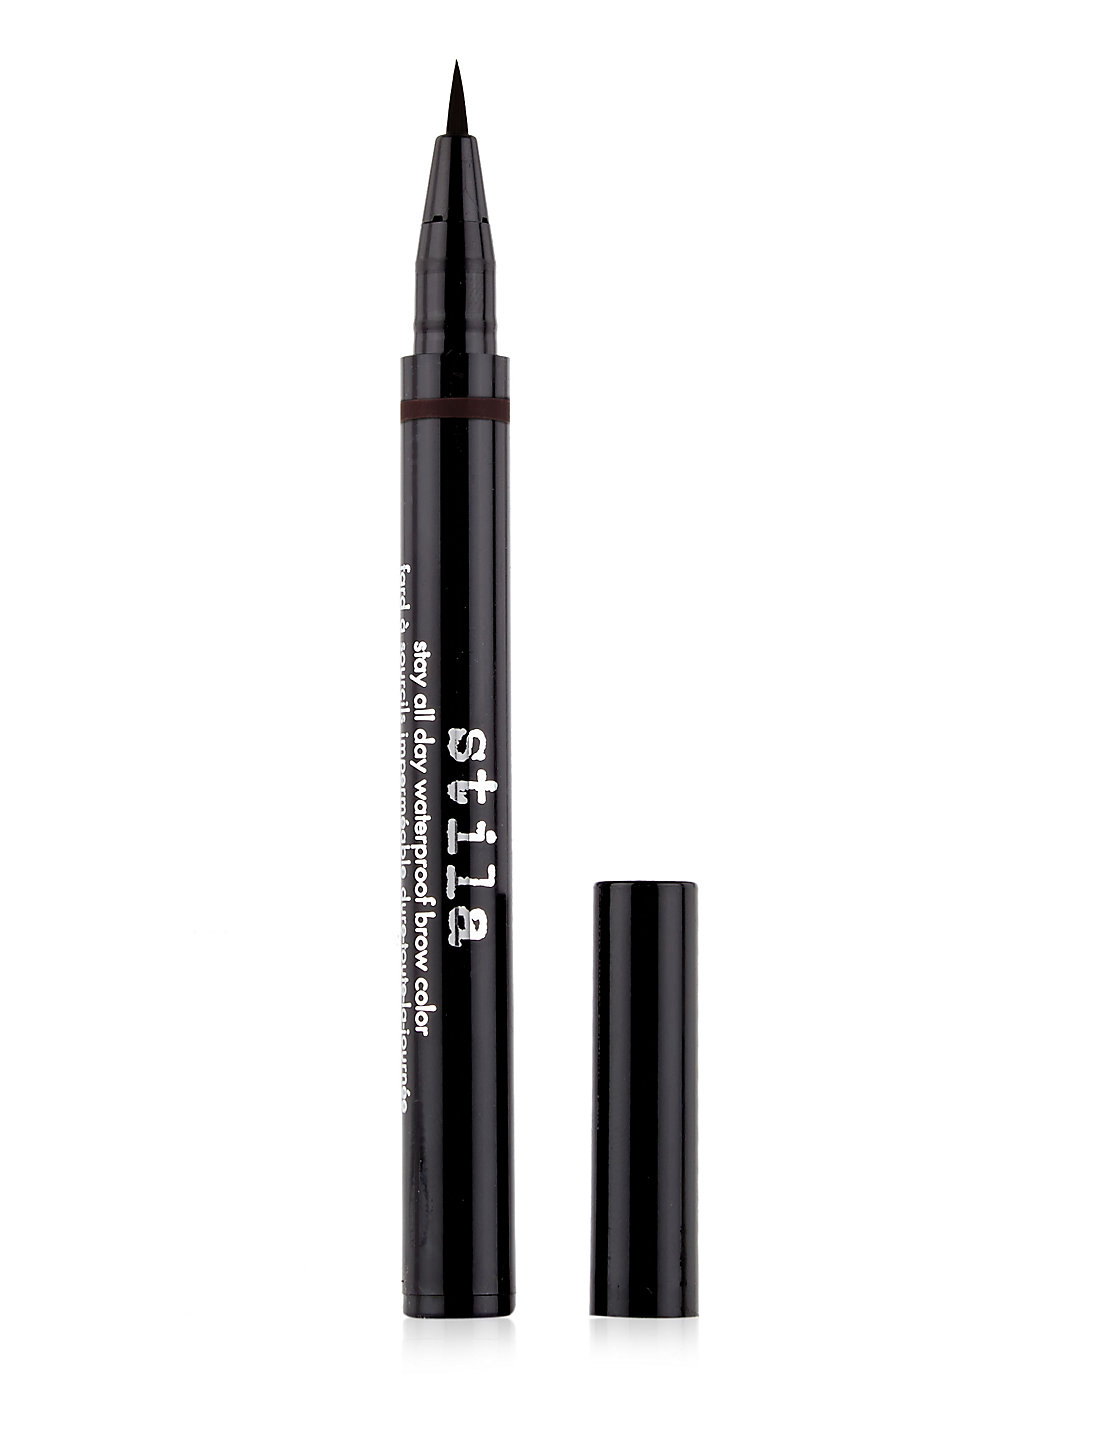 Stay All Day® Waterproof Eyebrow Pencil 1.8 ml | M&S